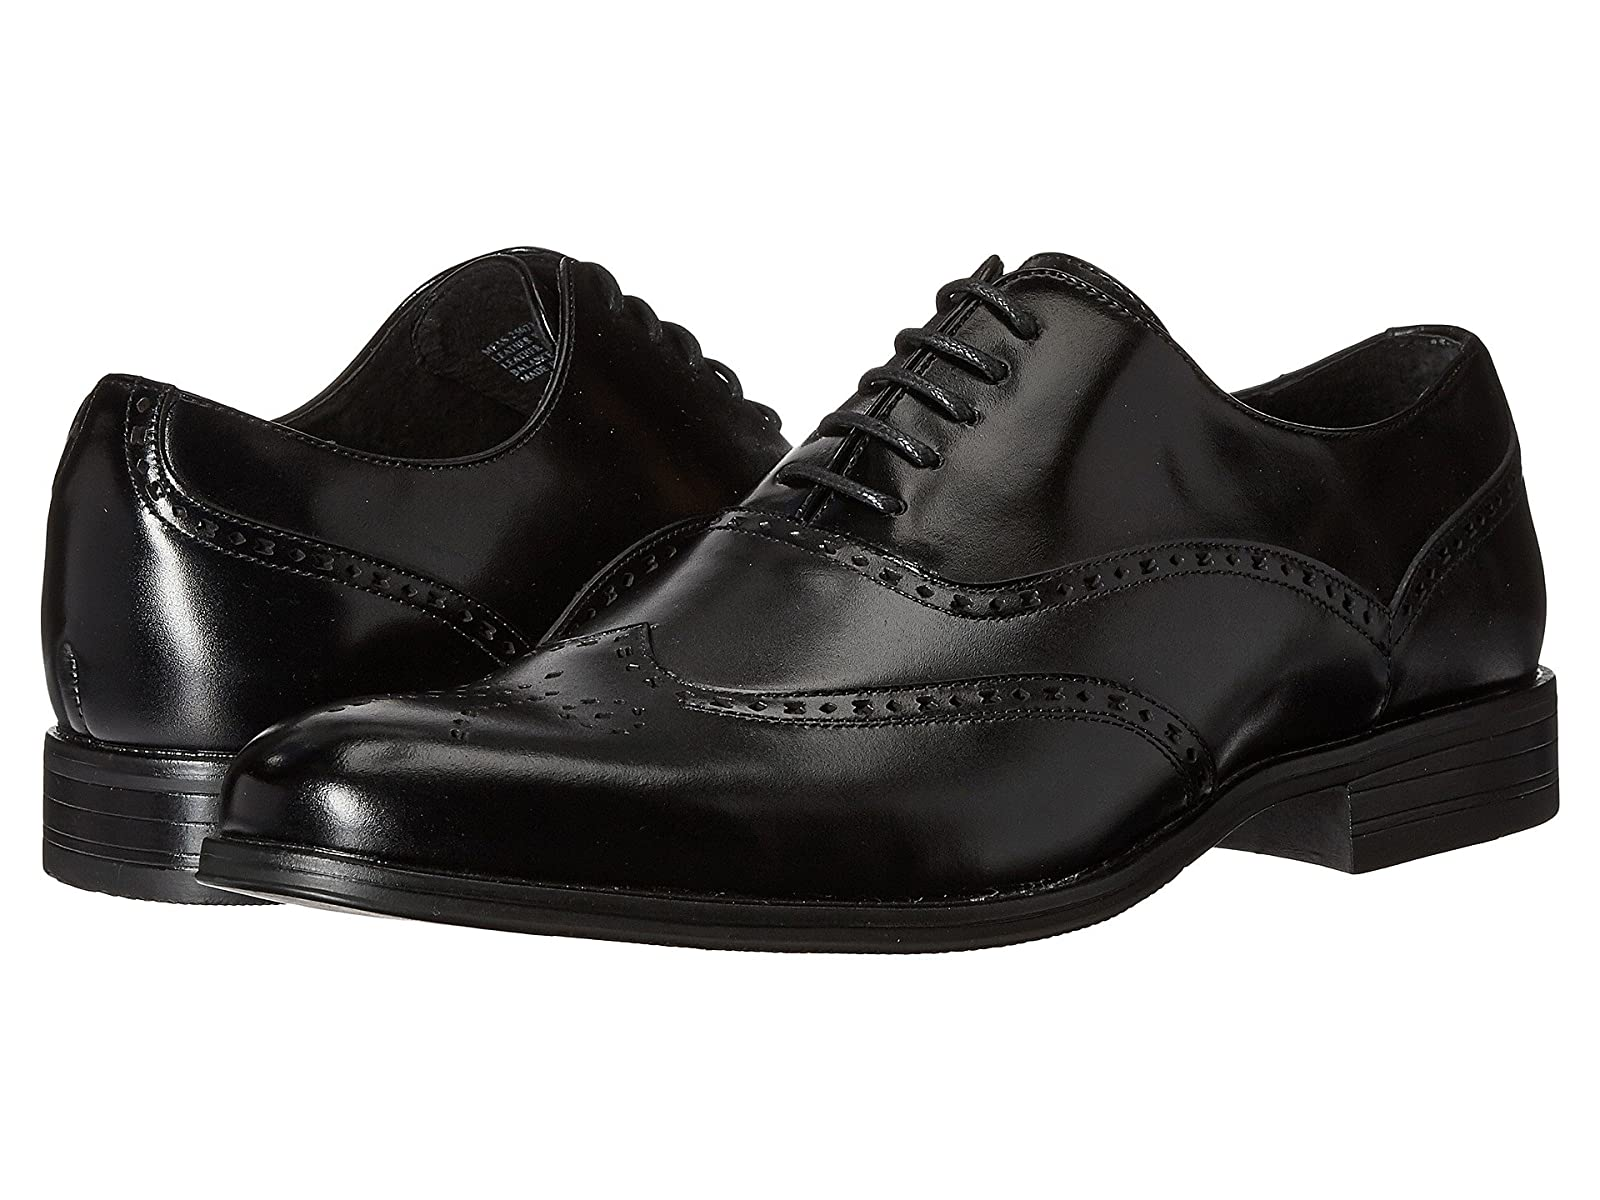 Stacy Adams Stockwell Wingtip OxfordCheap and distinctive eye-catching shoes